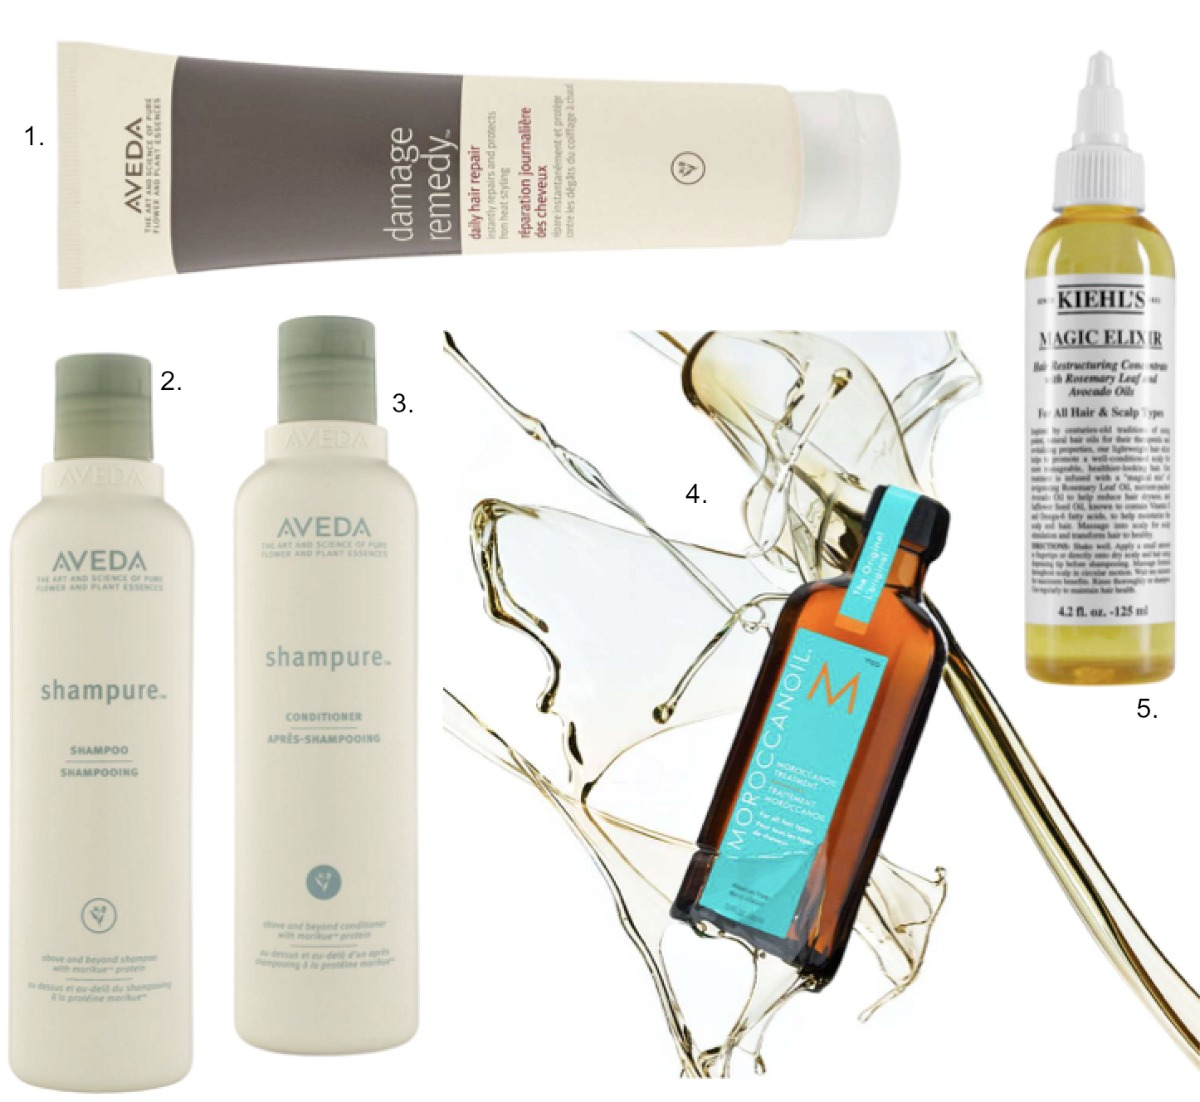 the best 5 hair care products for beautiful hair shiny soft moroccan oil review aveda shampure